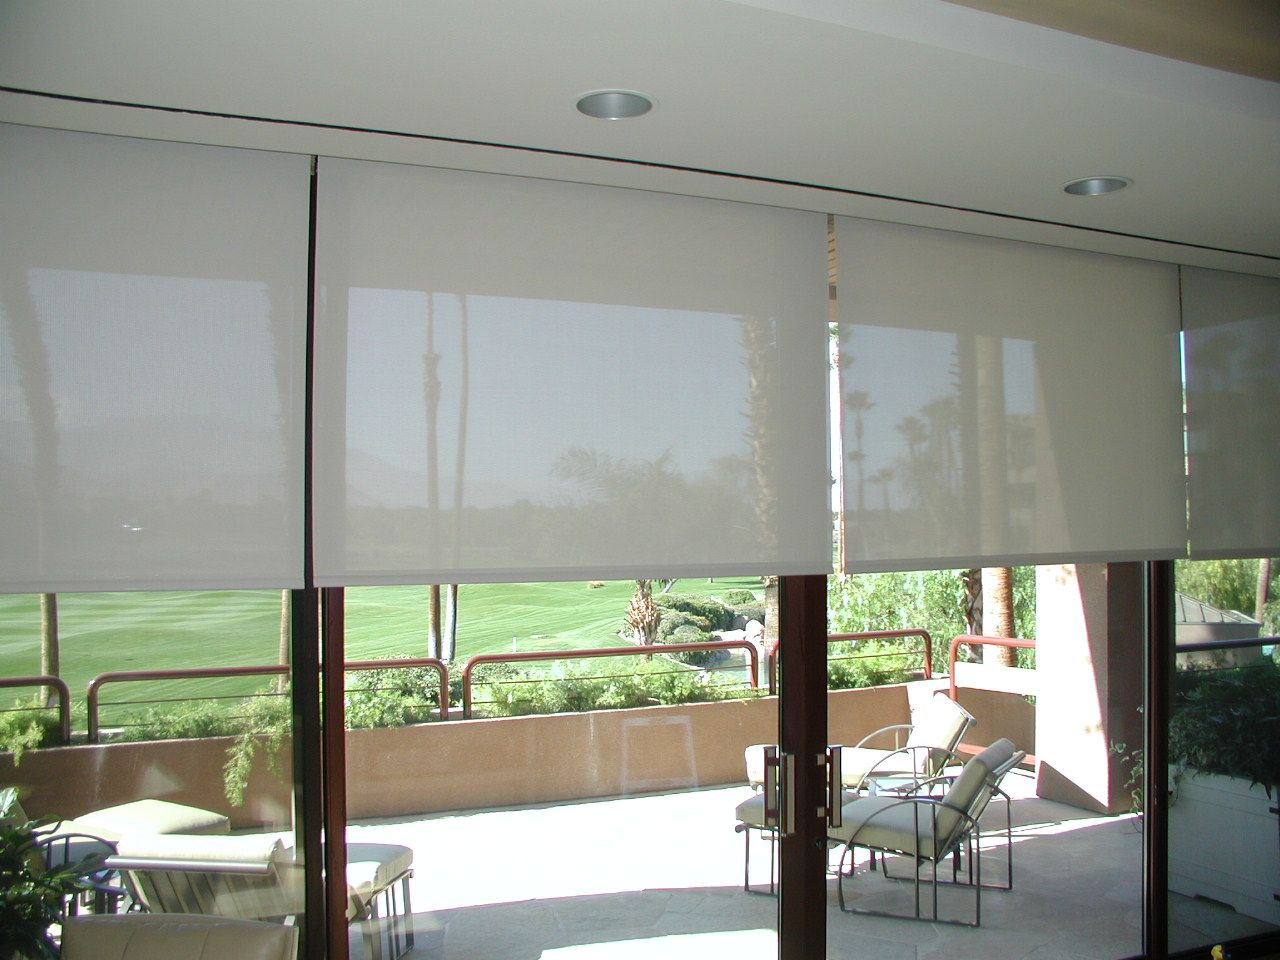 Top Roll Up Shades For Your Home Door Coverings Patio